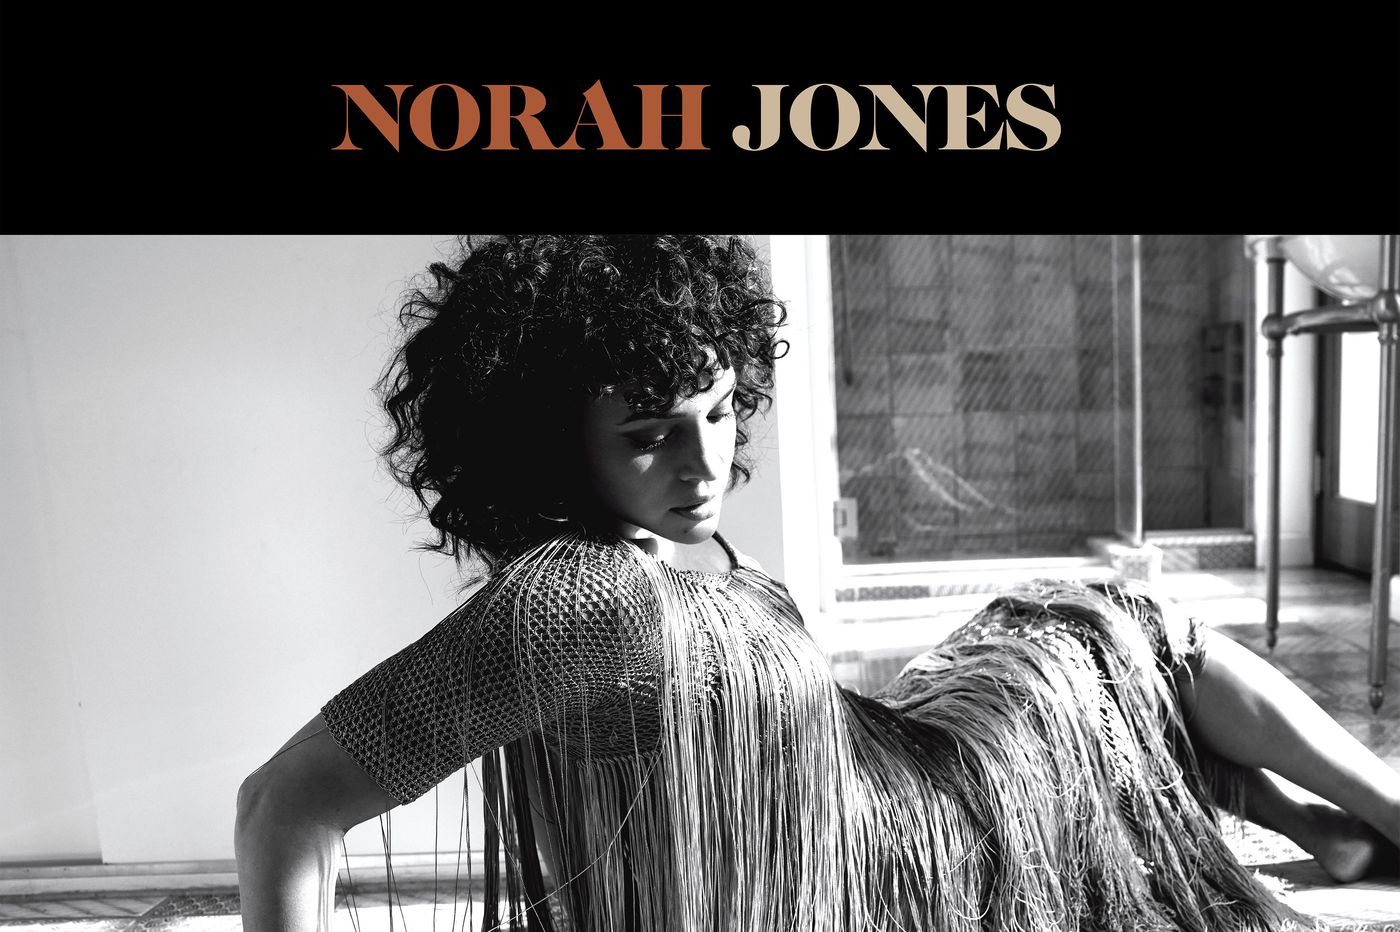 Norah Jones is here to calm you with an unhurried album that satisfies quietly | Review